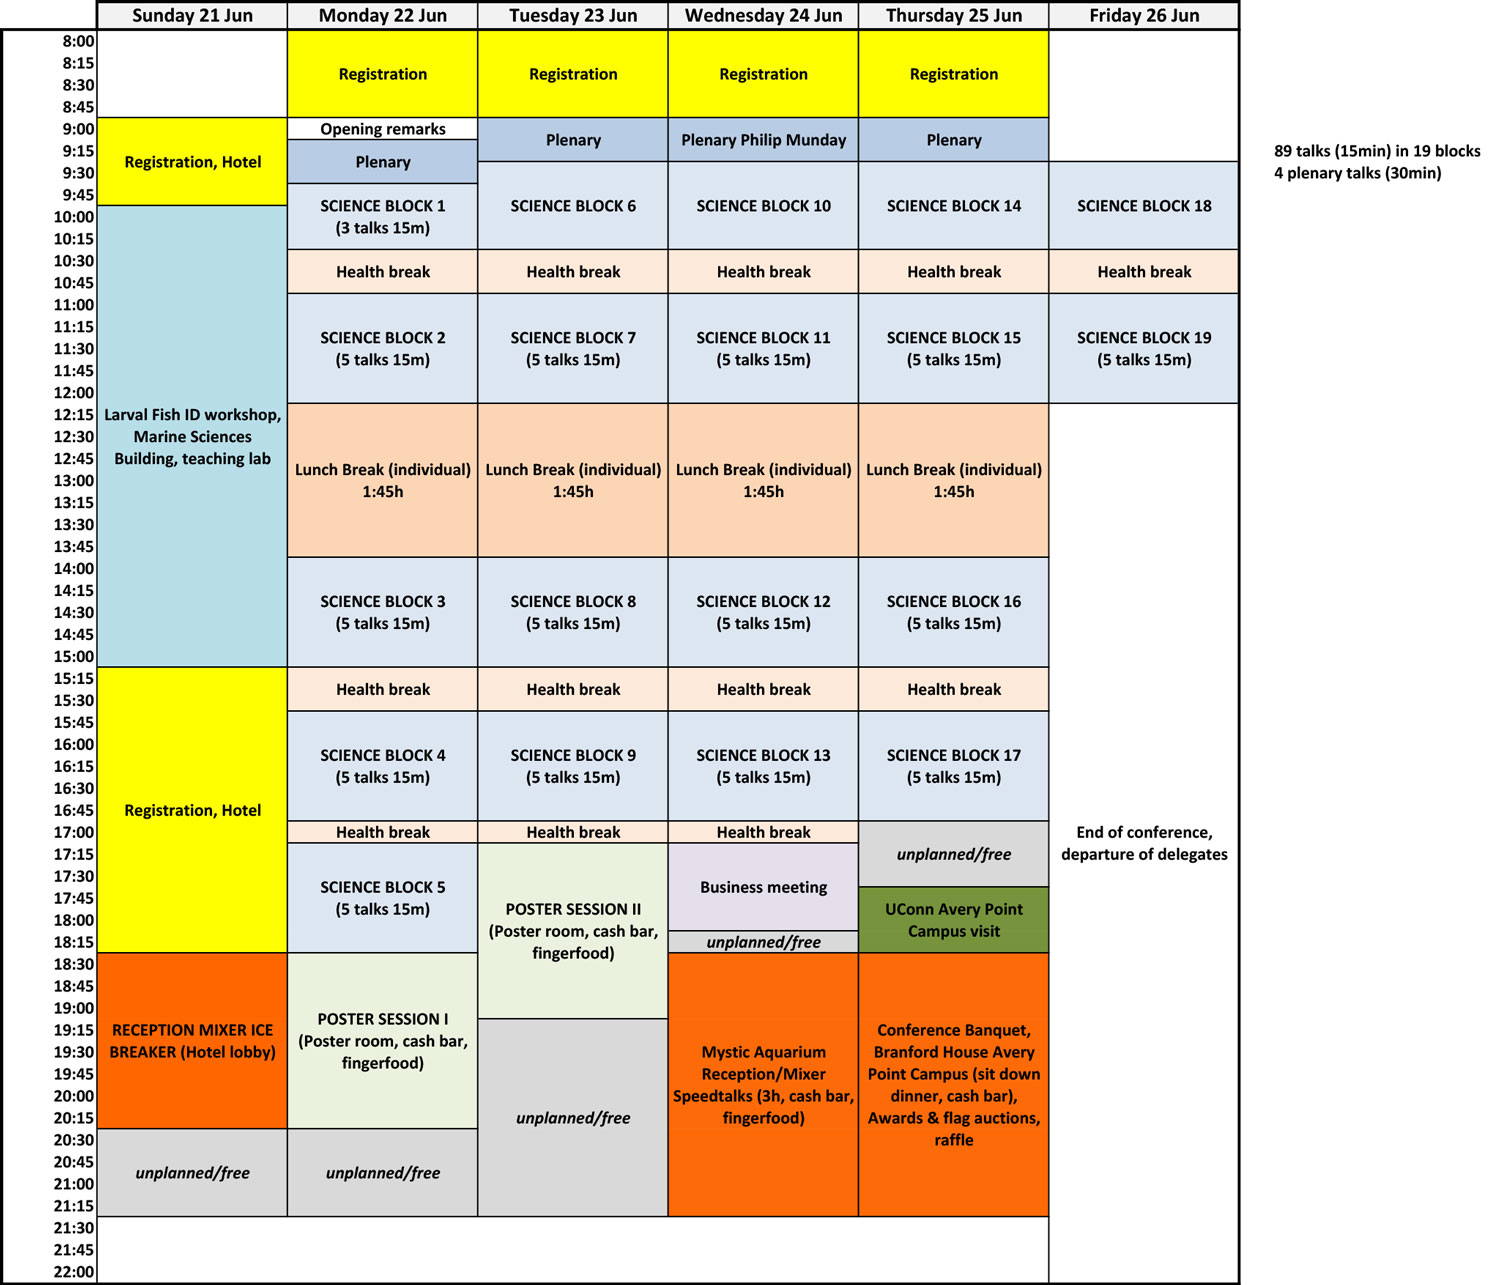 Conference schedule overview_v2